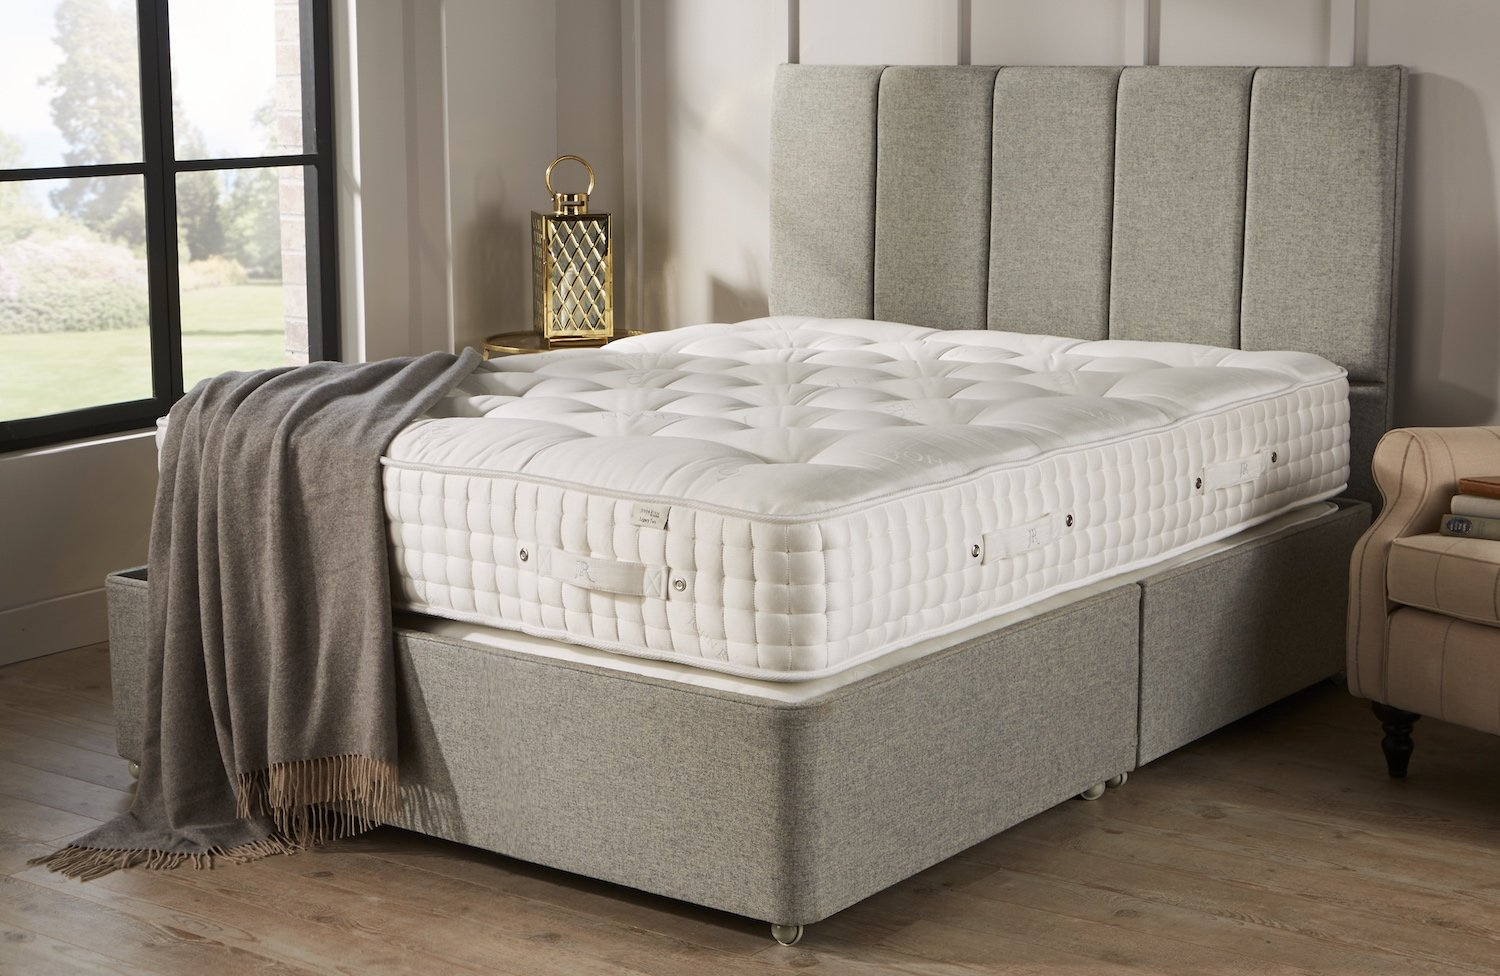 John ryan by design Legacy Full Bed